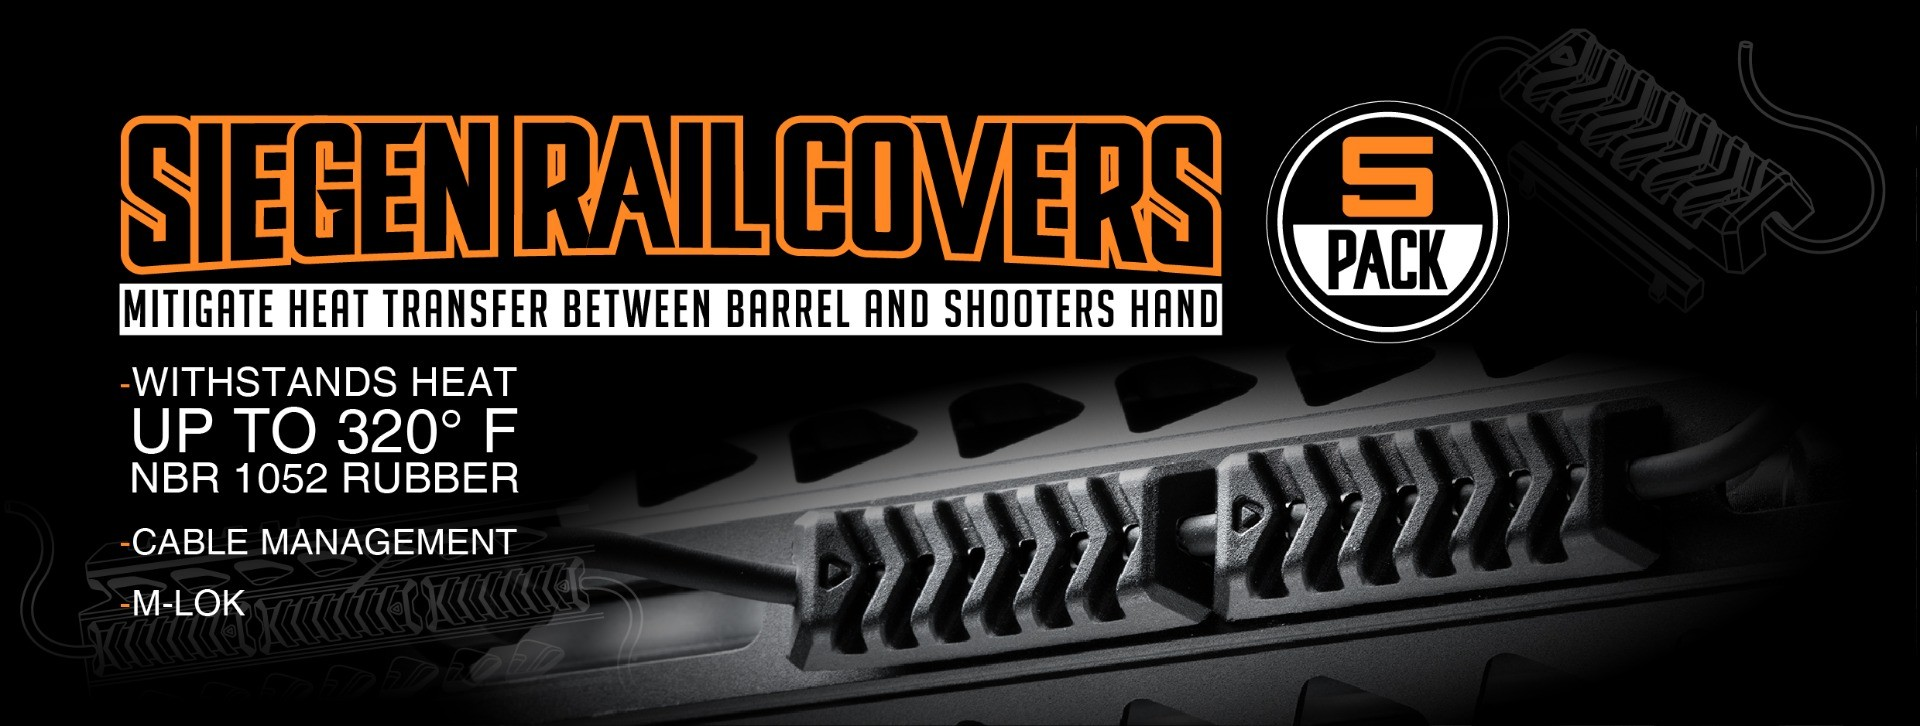 Strike Industries SIEGEN Rail Covers - Black (5-pack) | Redcon1 Tactical